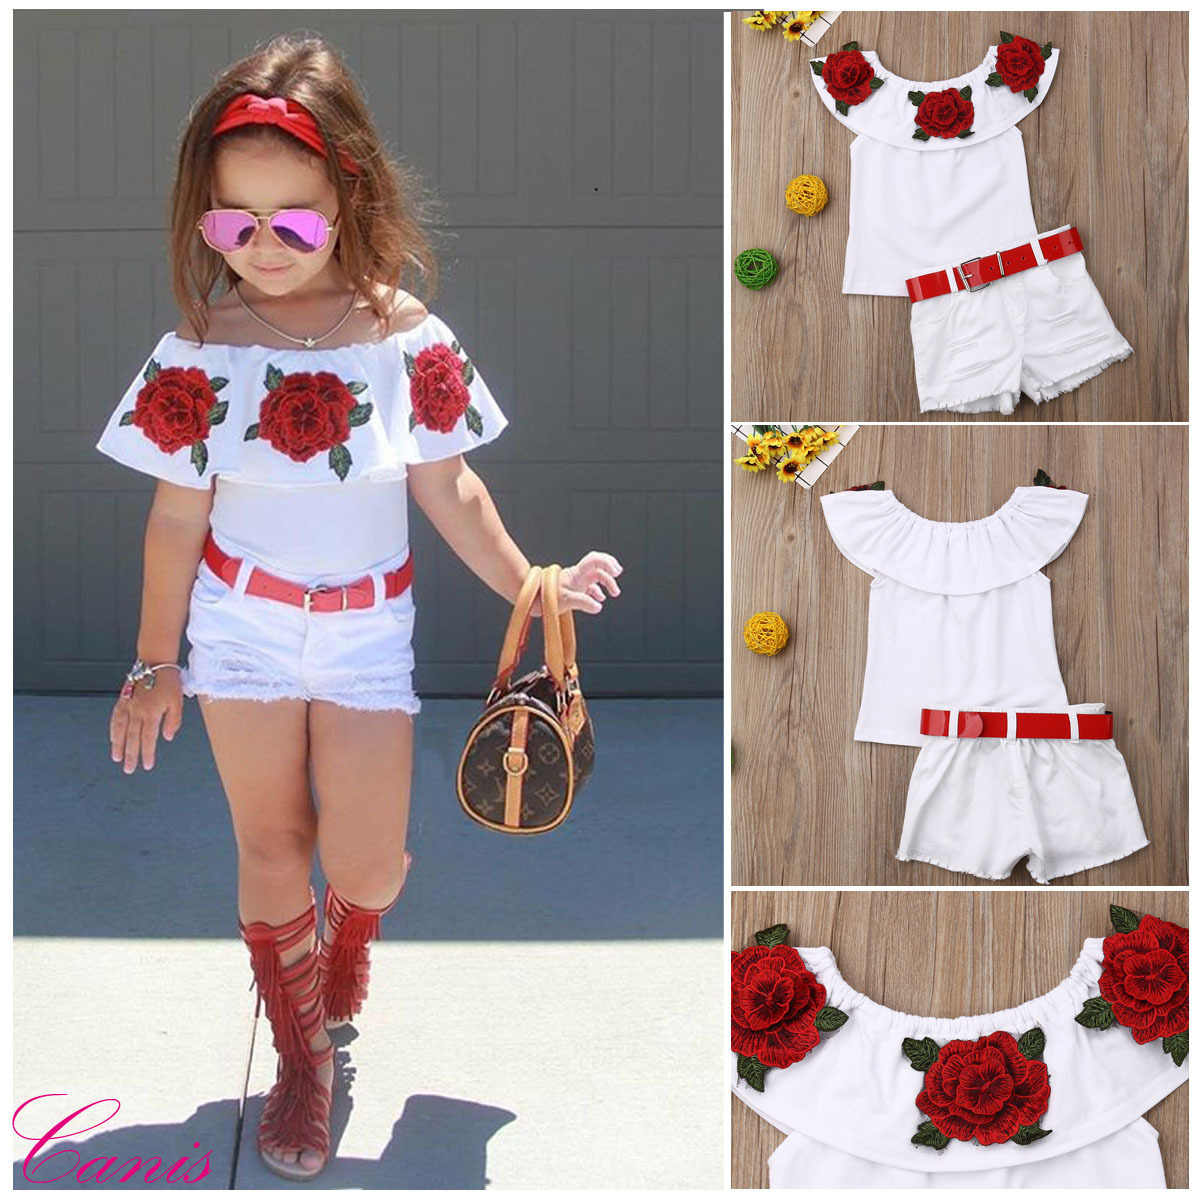 Foreign Trade Hot Sales Childrenswear 2019 Girls Summer Children Embroidery Horizontal Neck Tops Shorts Two-Piece Set